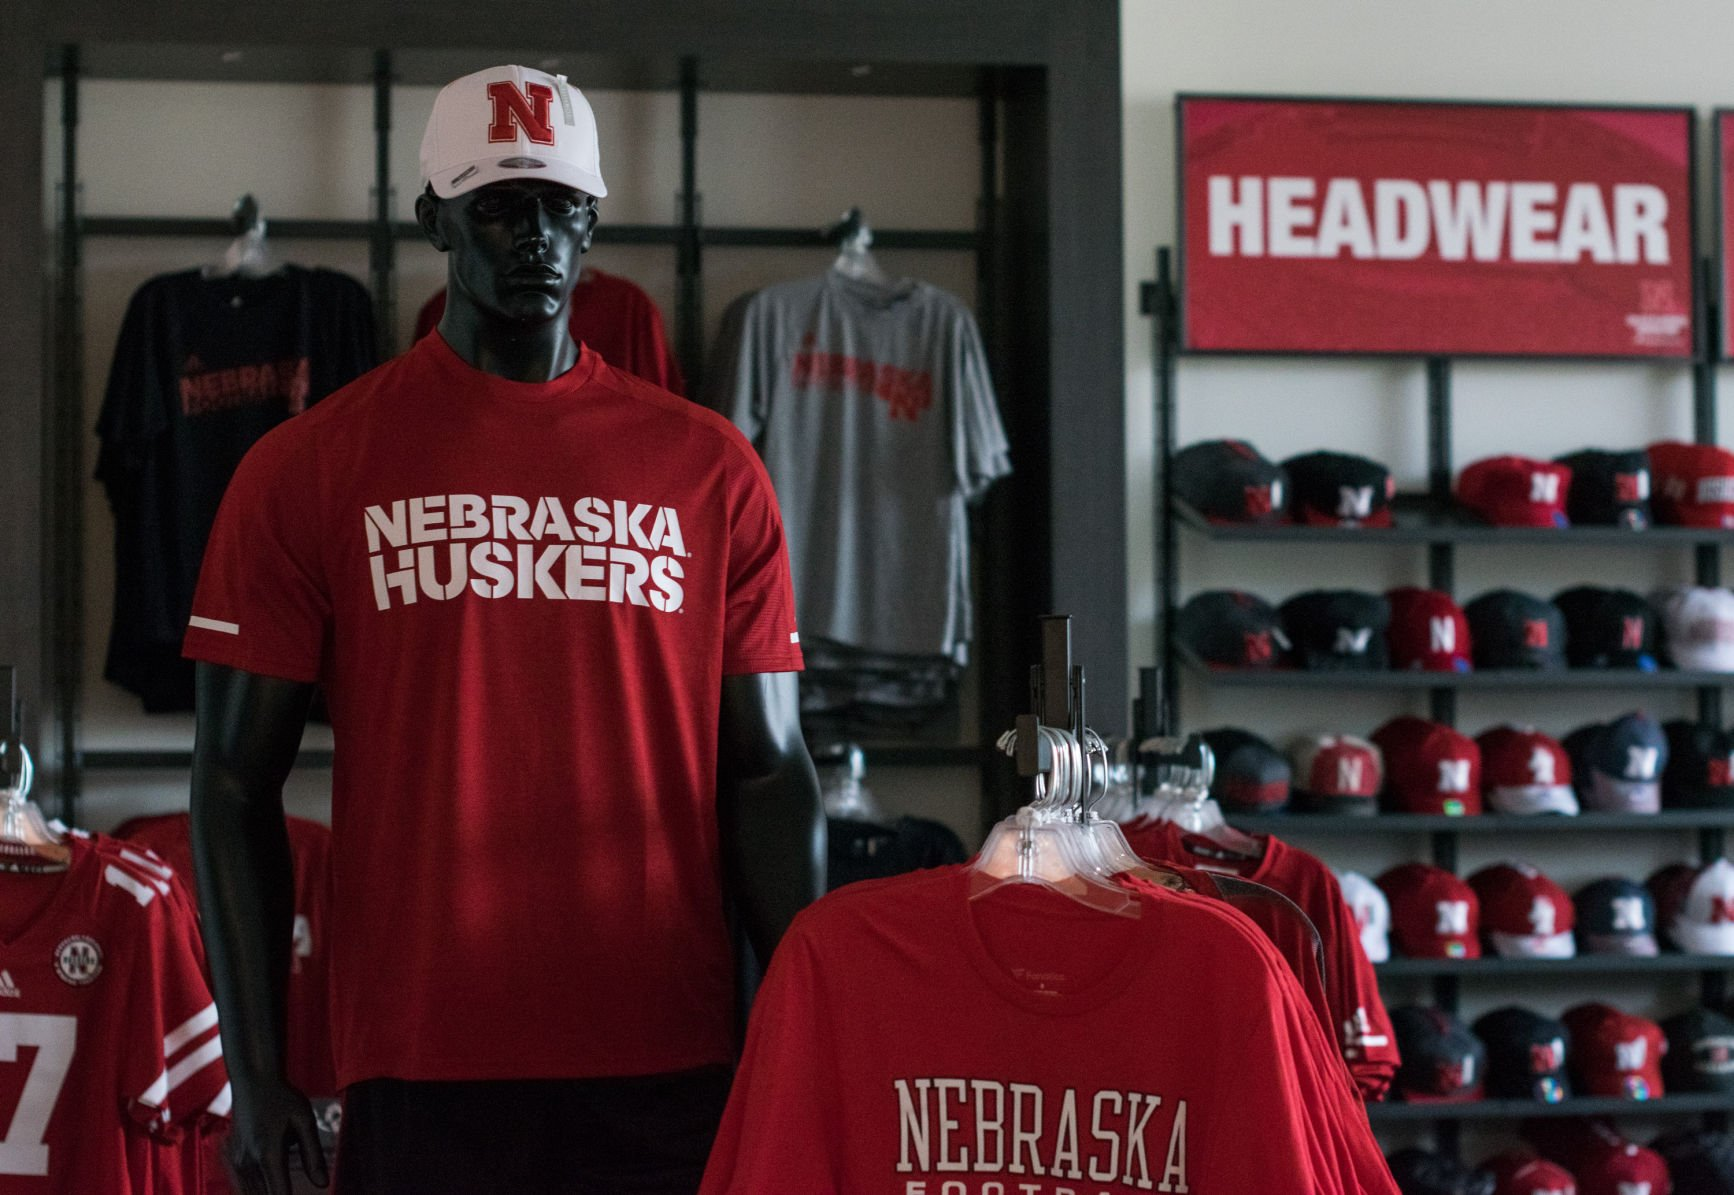 A New Husker Store Was Developed By A Group Of Student For Interior Design  Studio 2. Students Can Find The Store On The First Floor Of The New College  Of ...